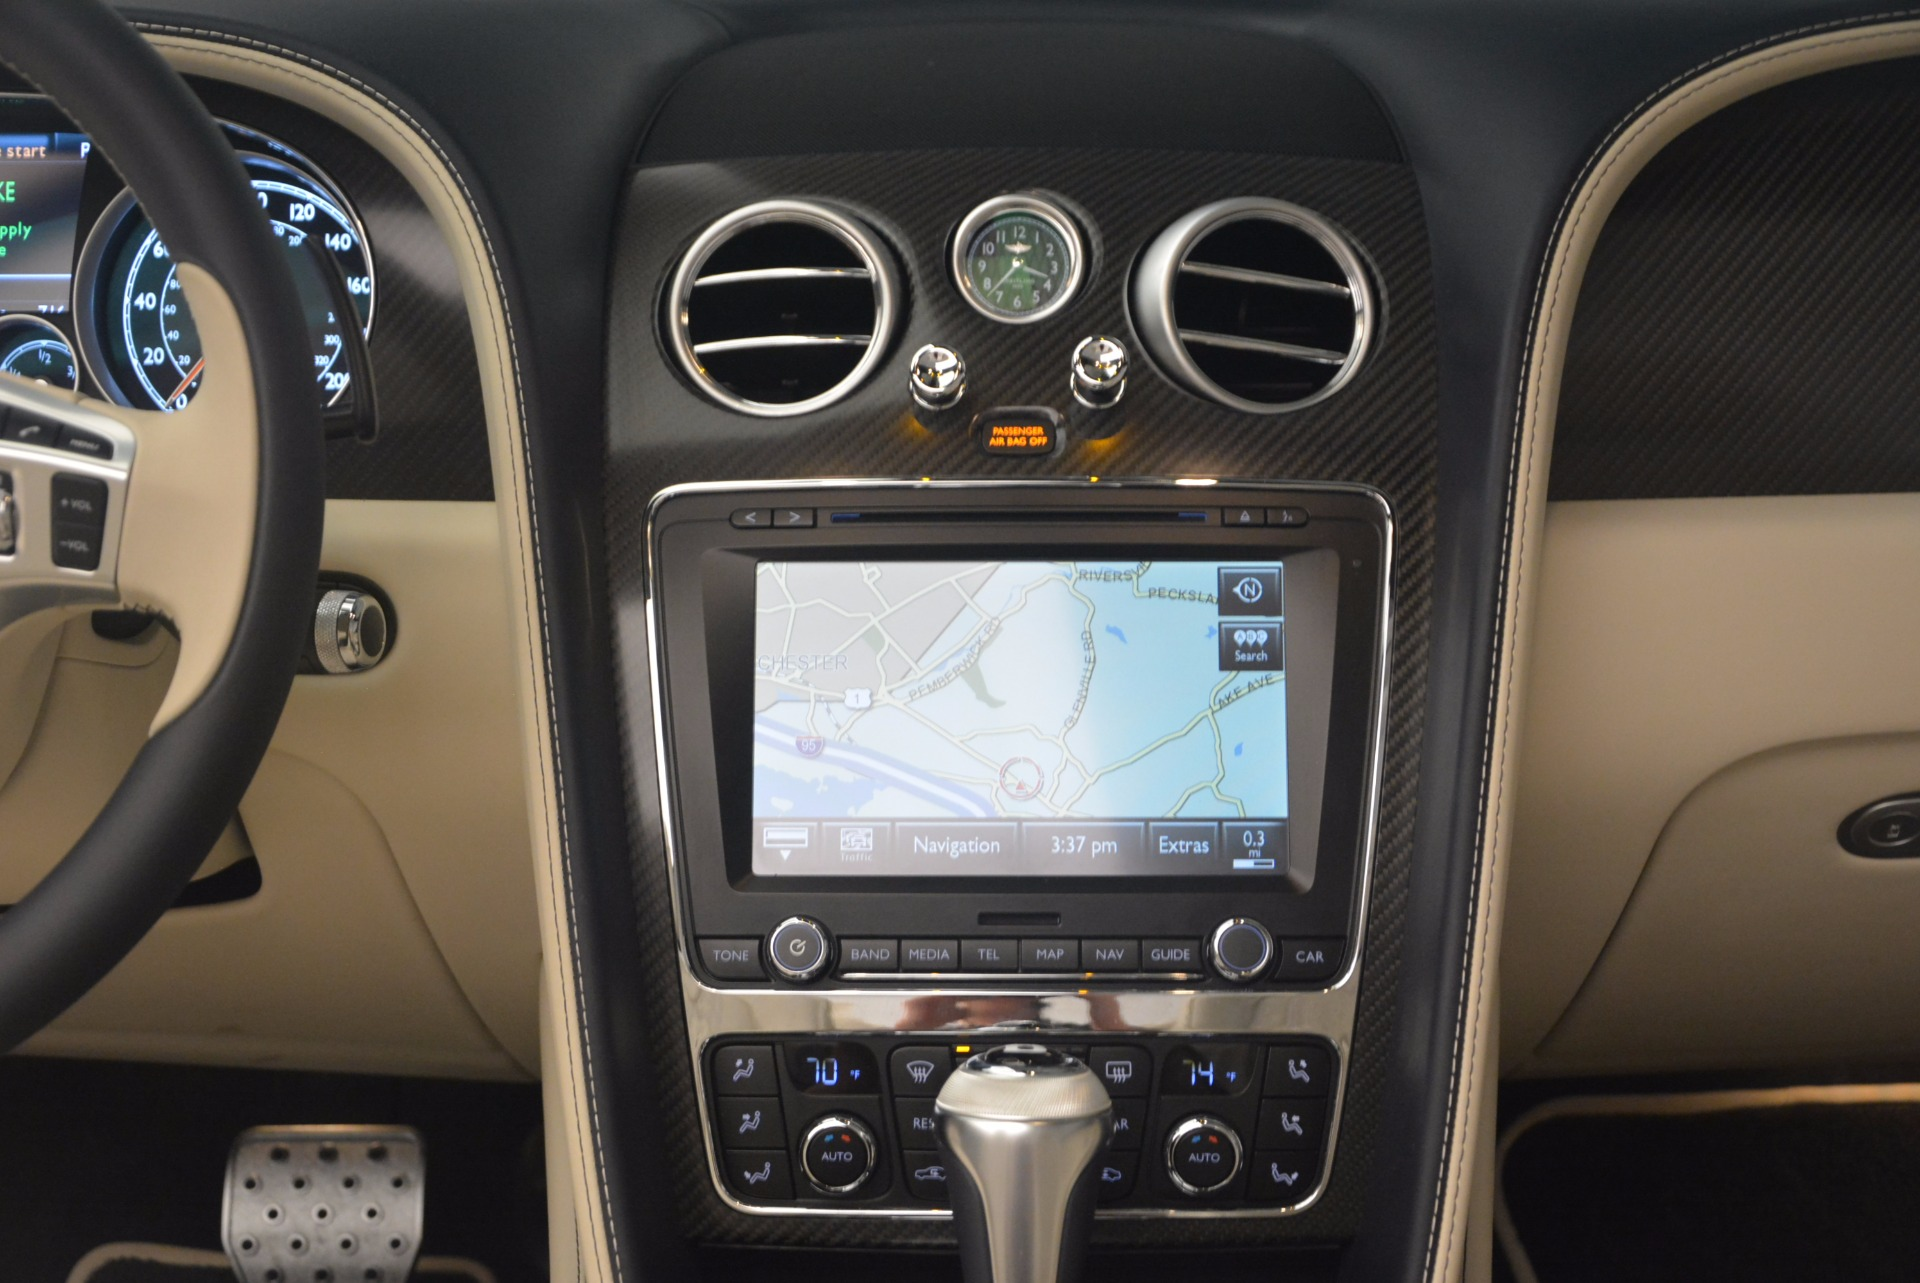 Used 2013 Bentley Continental GT V8 Le Mans Edition, 1 of 48 For Sale In Greenwich, CT 1288_p39